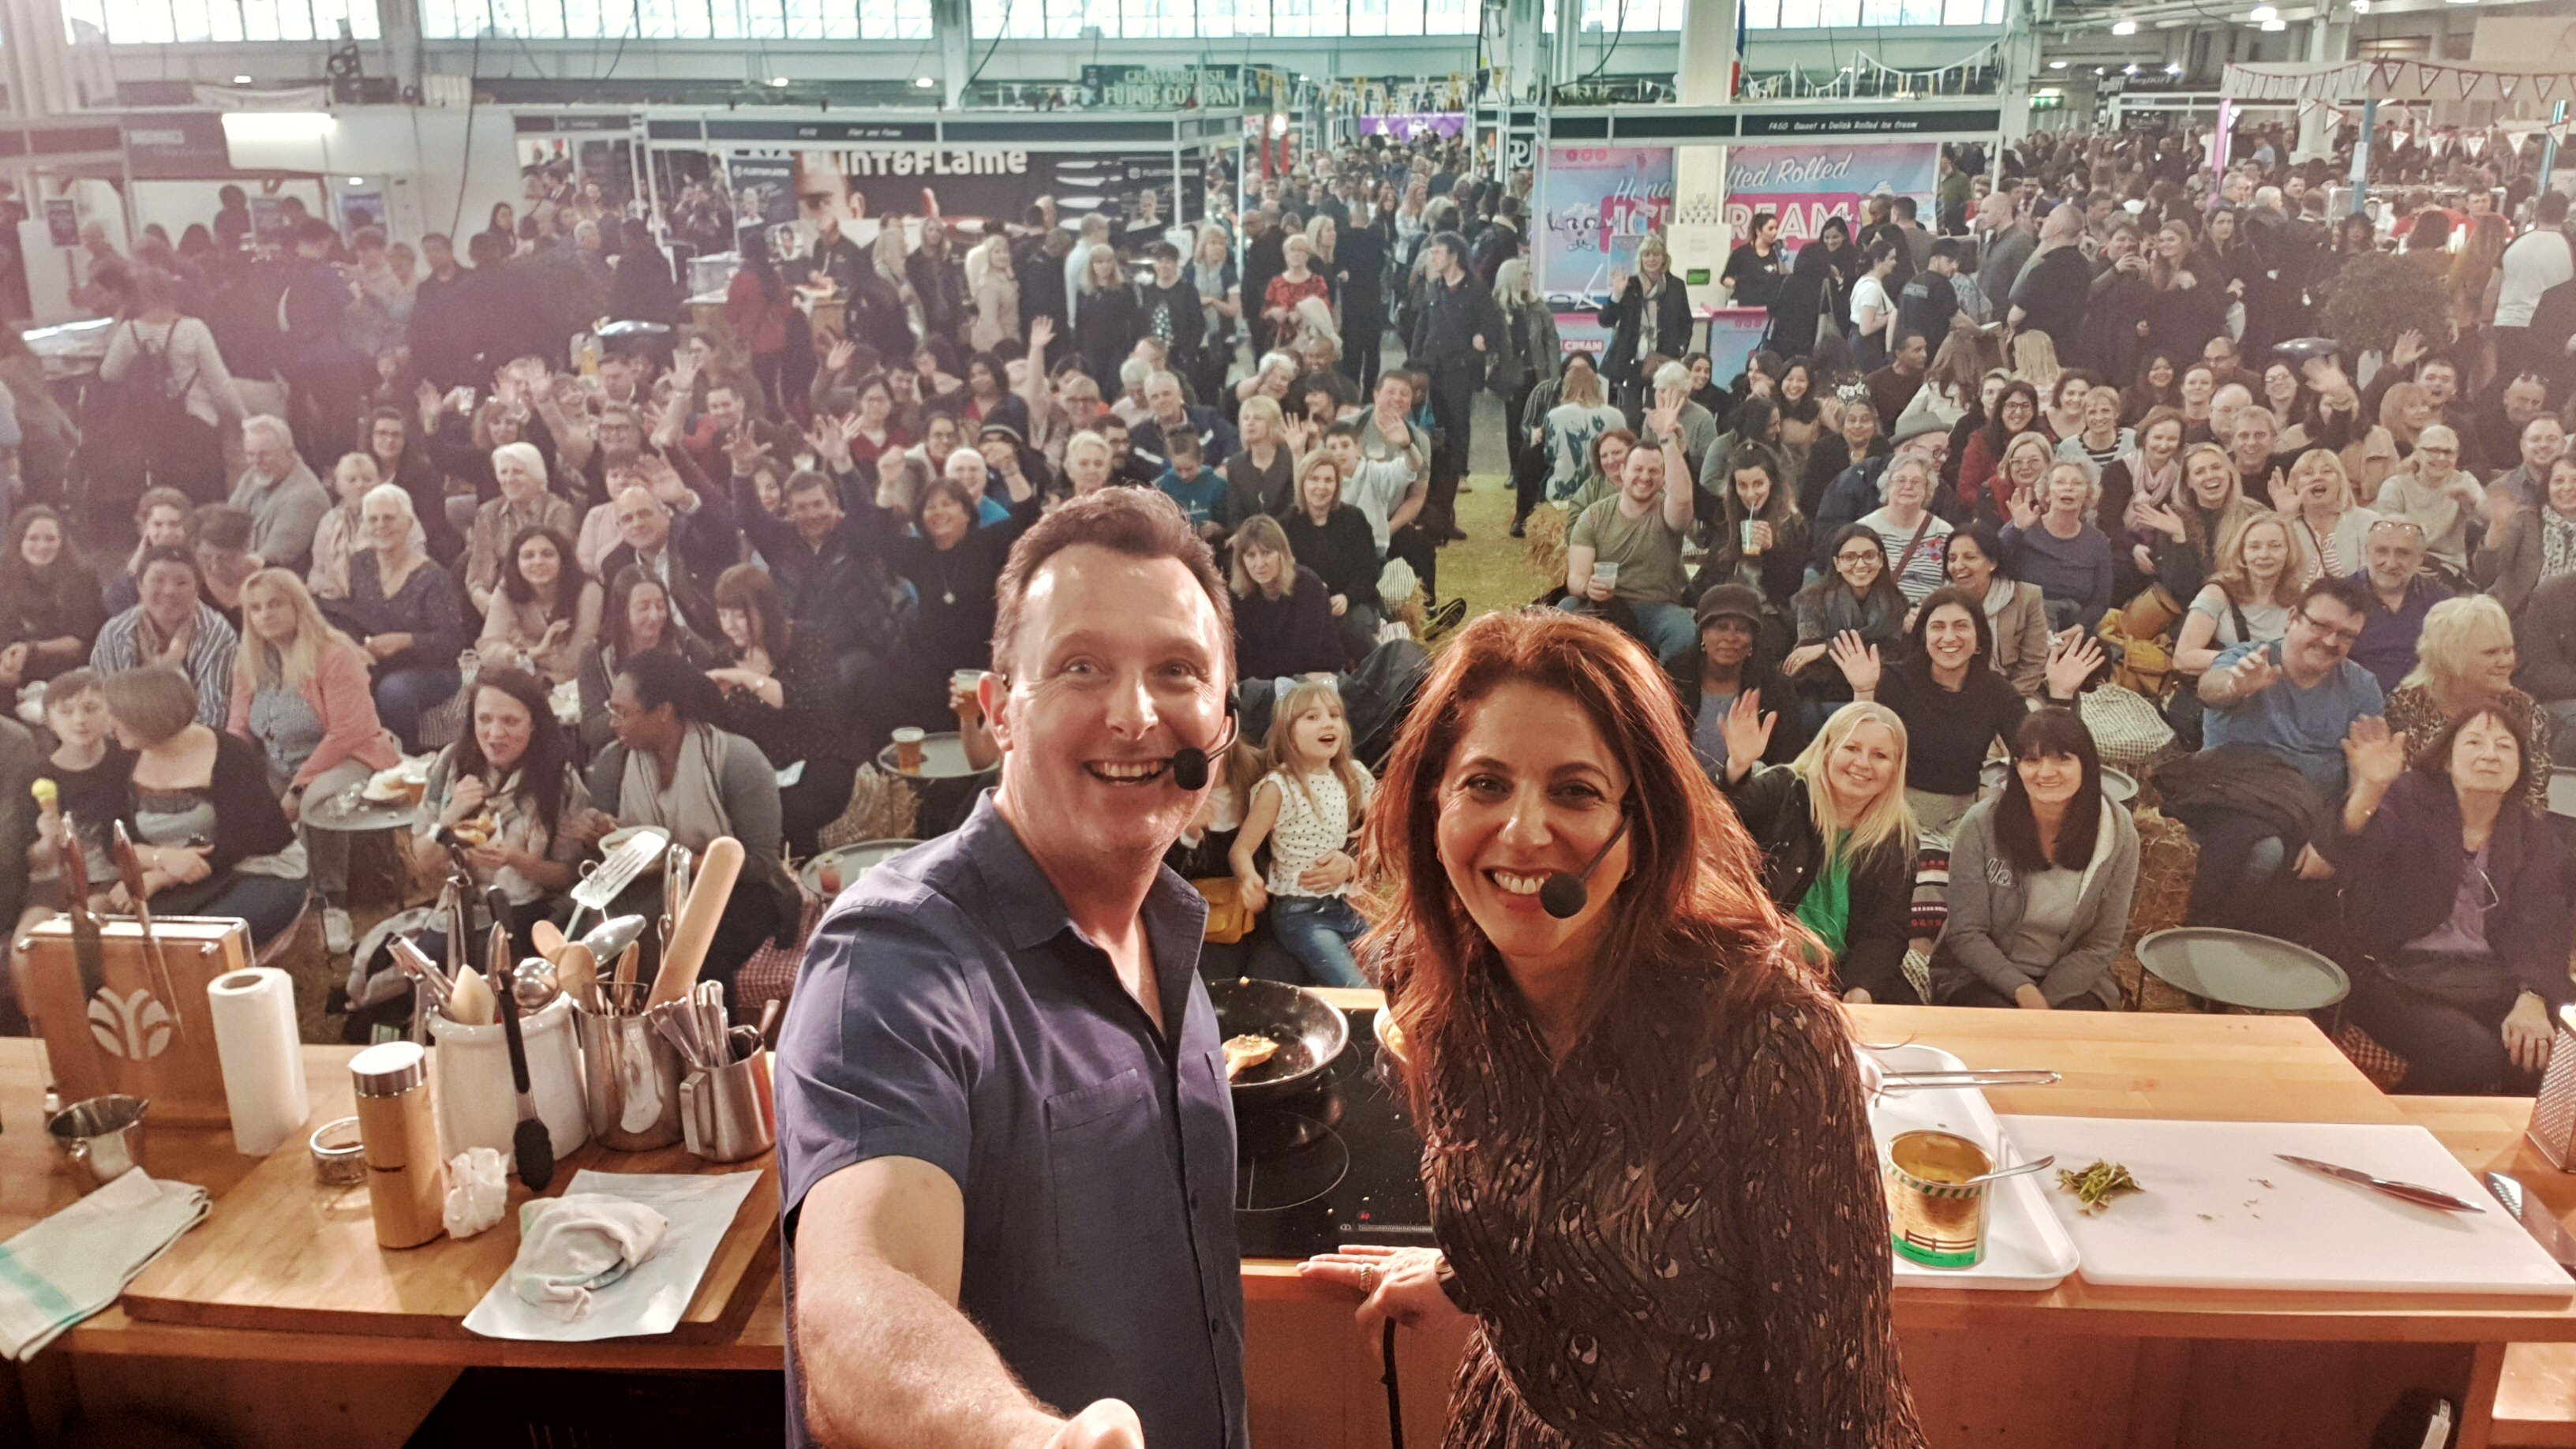 May Simpkin demonstrates healthy cooking at the Ideal Home Show 2019, Olympia London